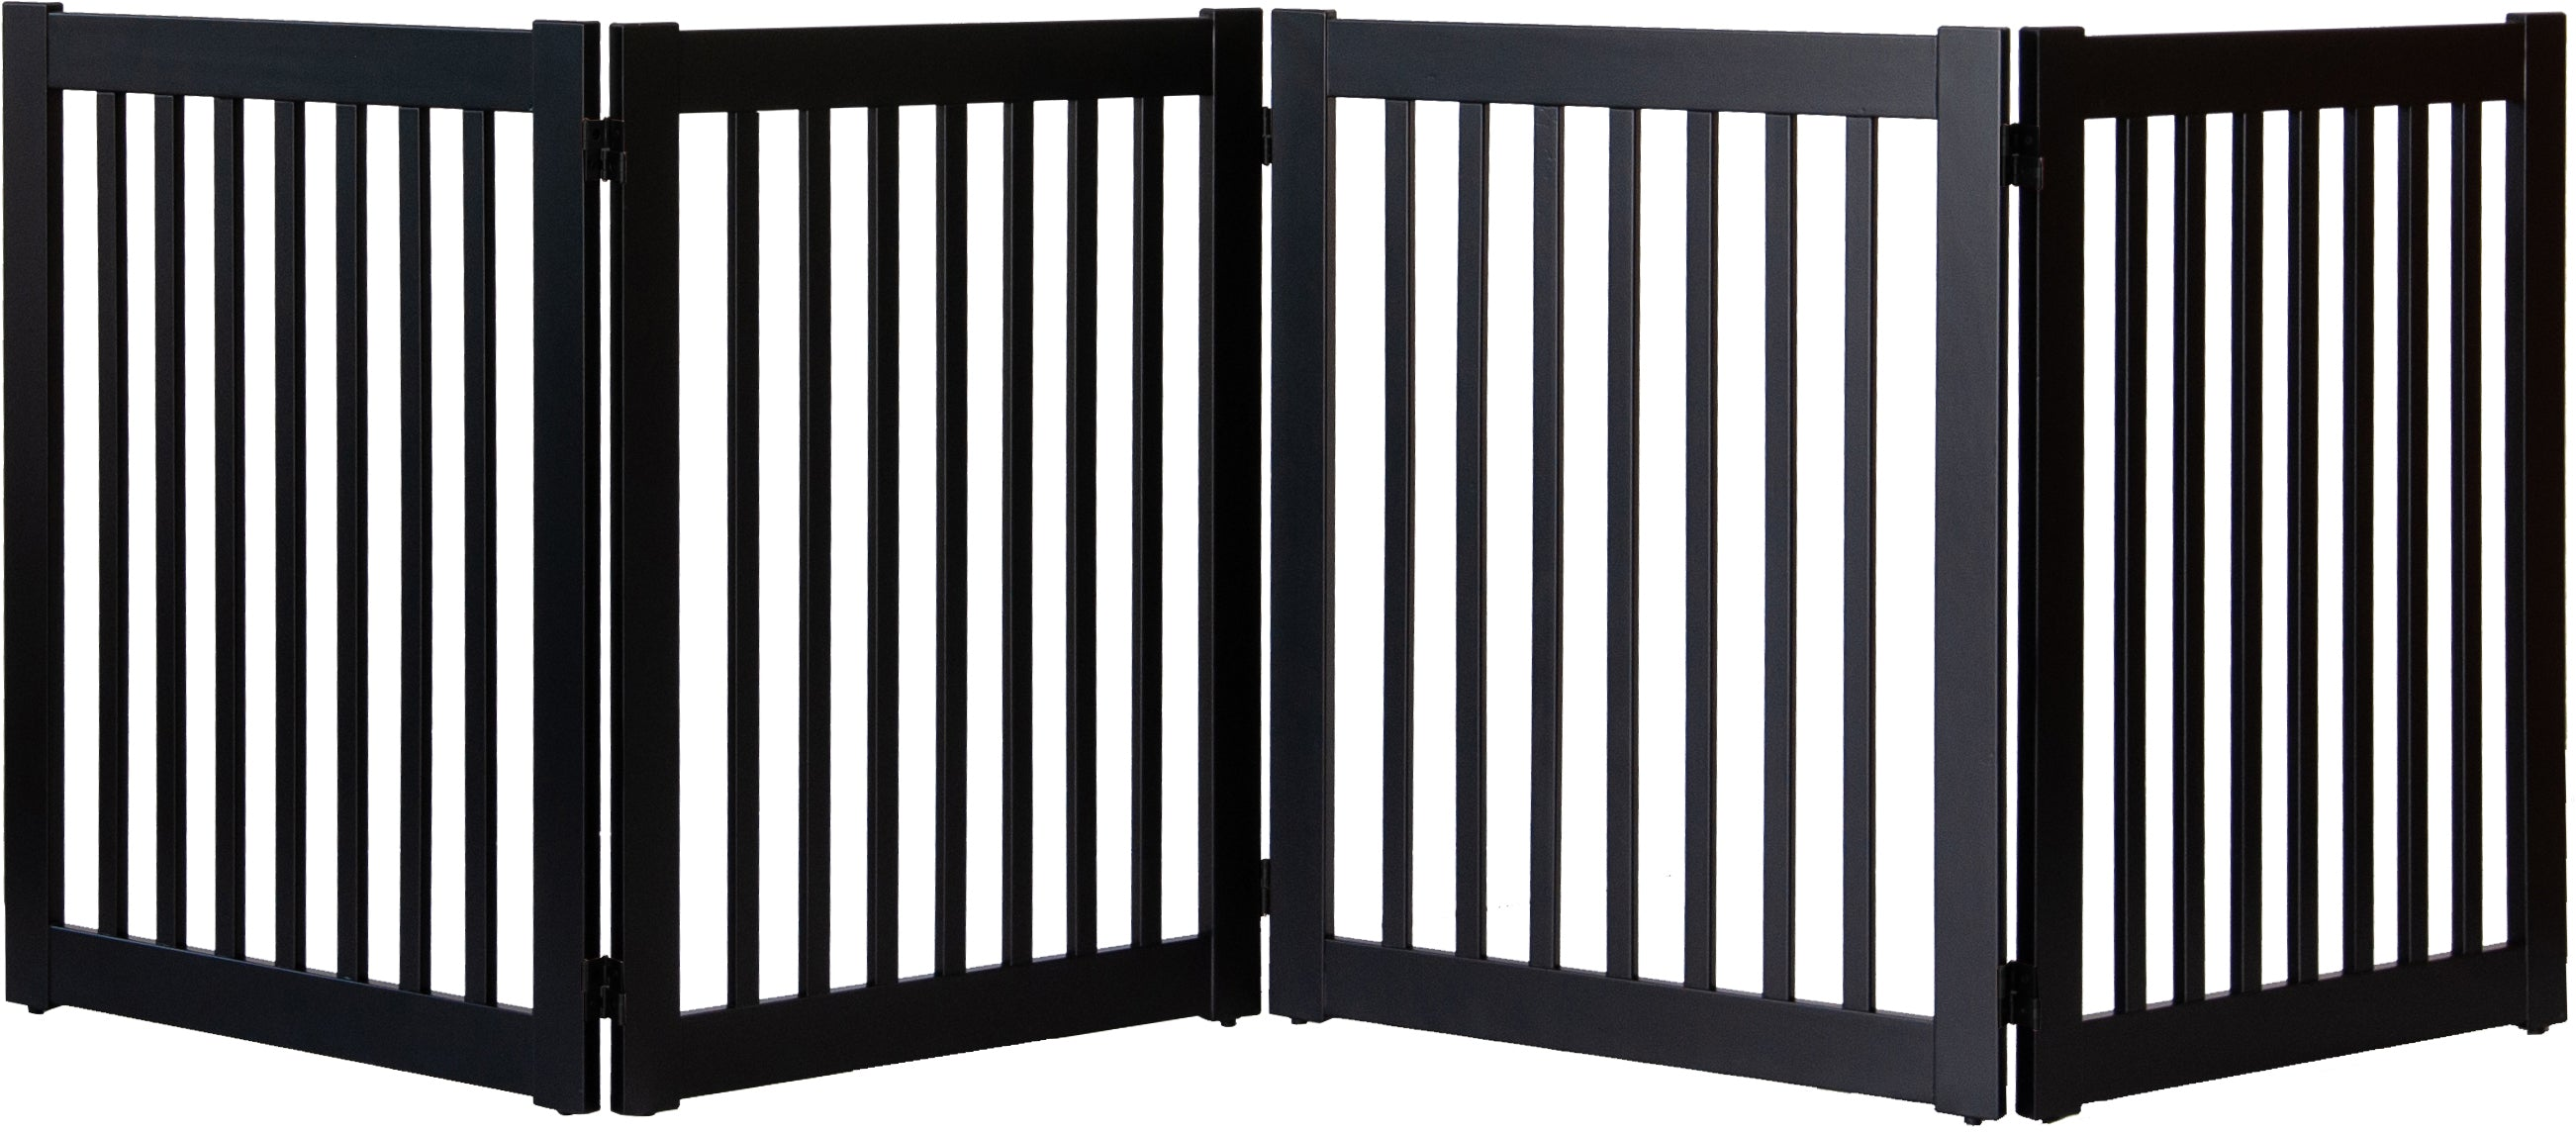 Amish Handcrafted 4 Panel Accordion Pet Gate Black